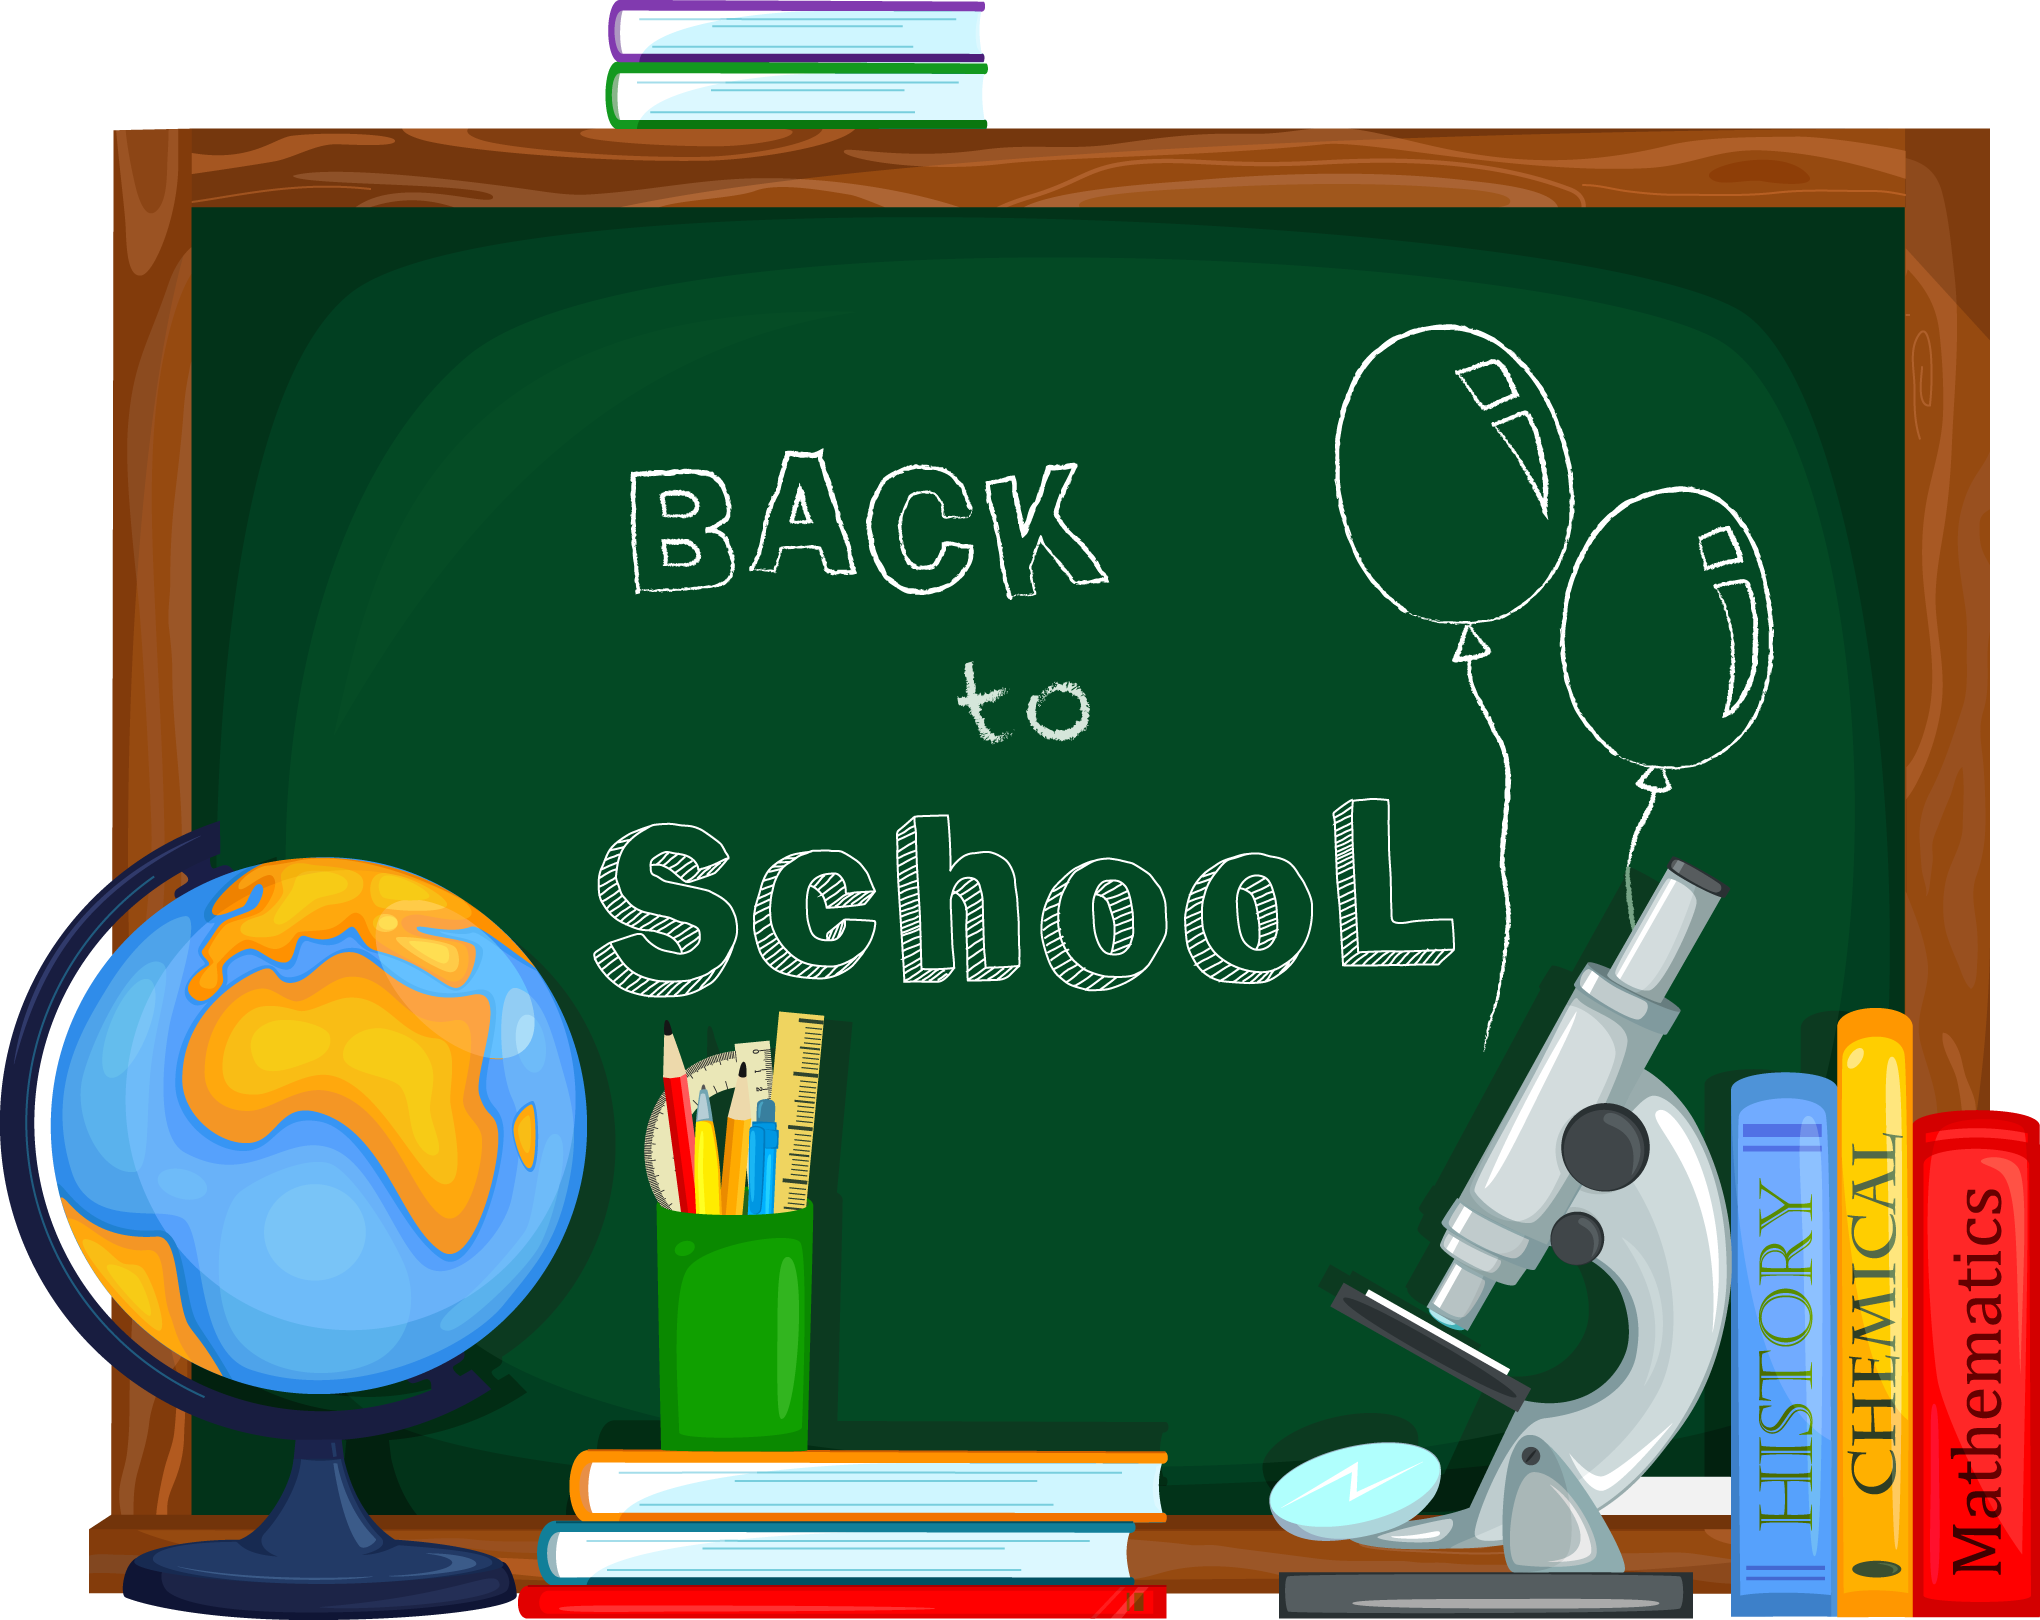 Back to school supplies clipart vector library stock School Clip art - School supplies and chalkboard 2040*1620 ... vector library stock